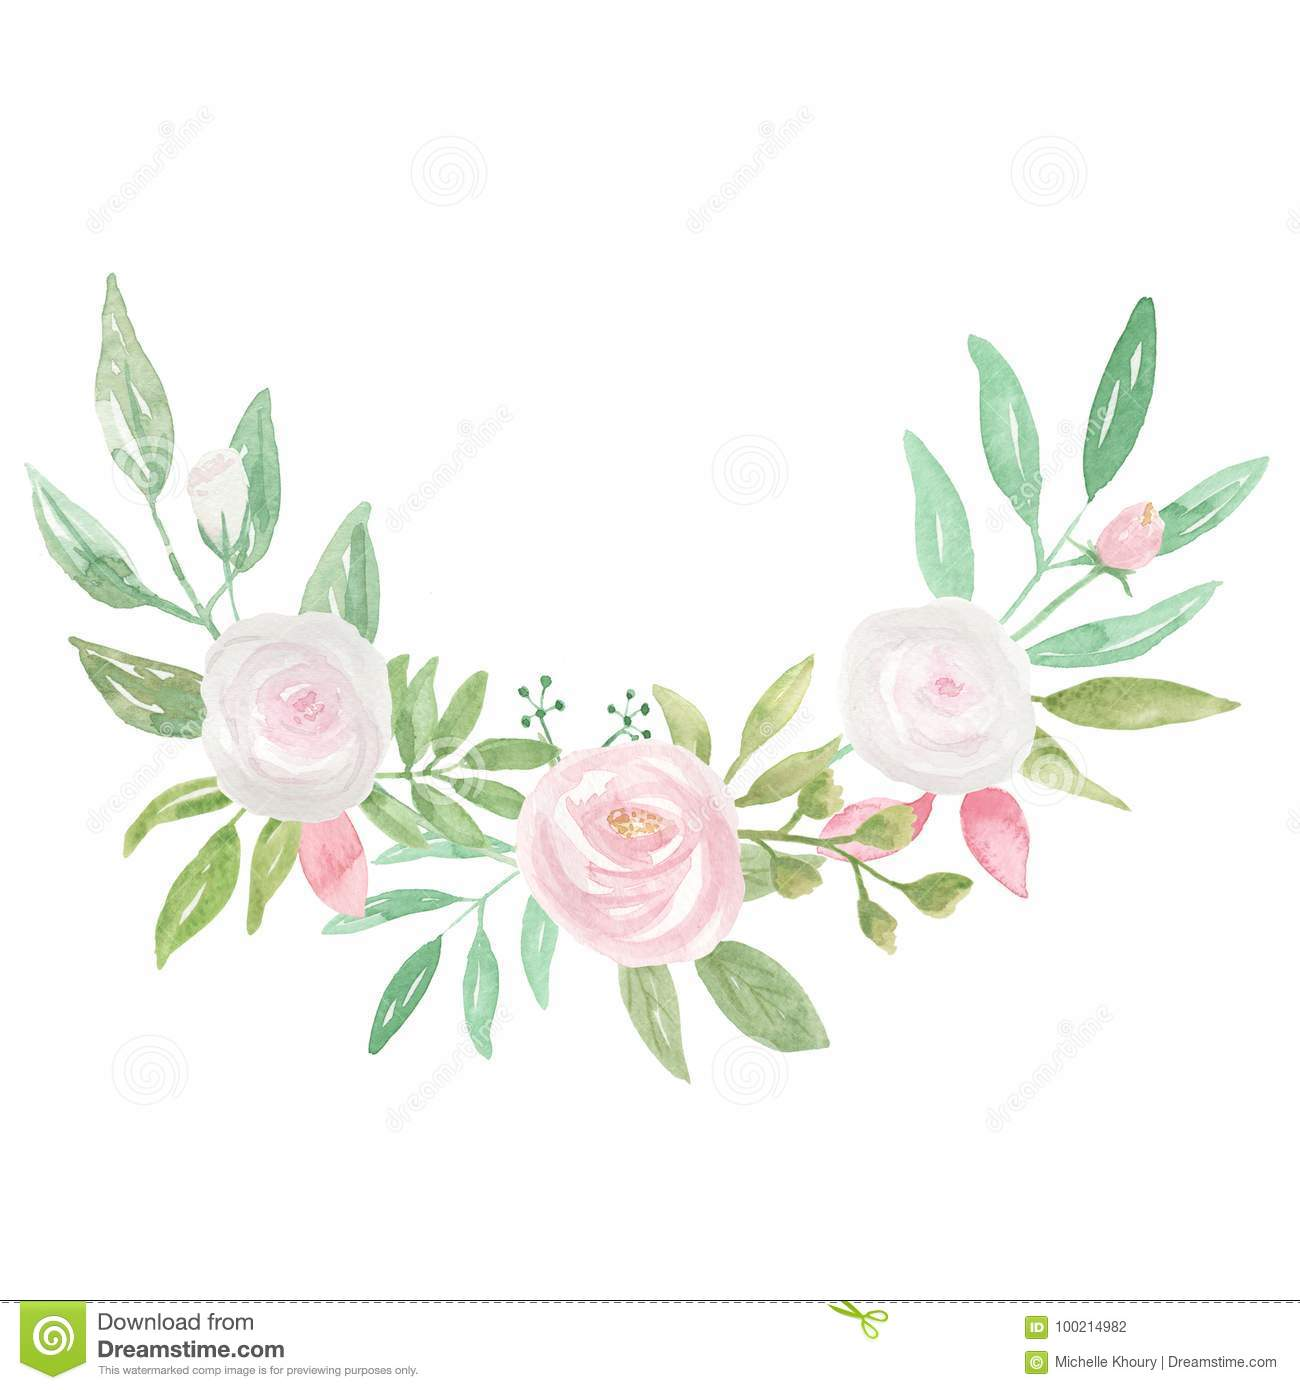 Watercolour Frame Pink White Bouquet Garland Flower Hand Painted.